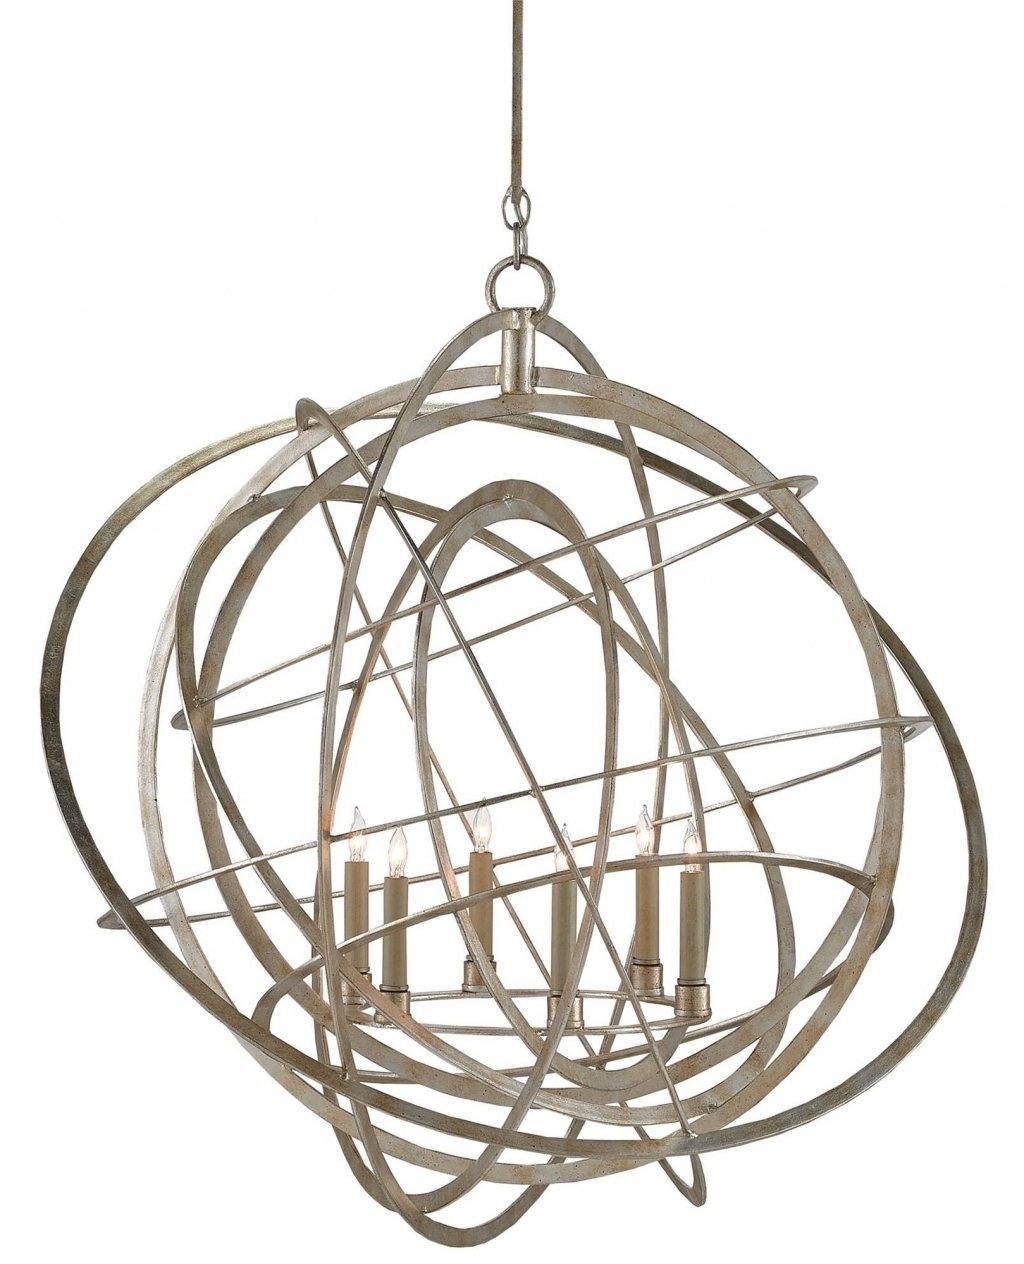 Famous Metal Sphere Chandelier Intended For Decorating: Glass Orb Chandelier Fresh Chandelier Metal Sphere (View 14 of 20)